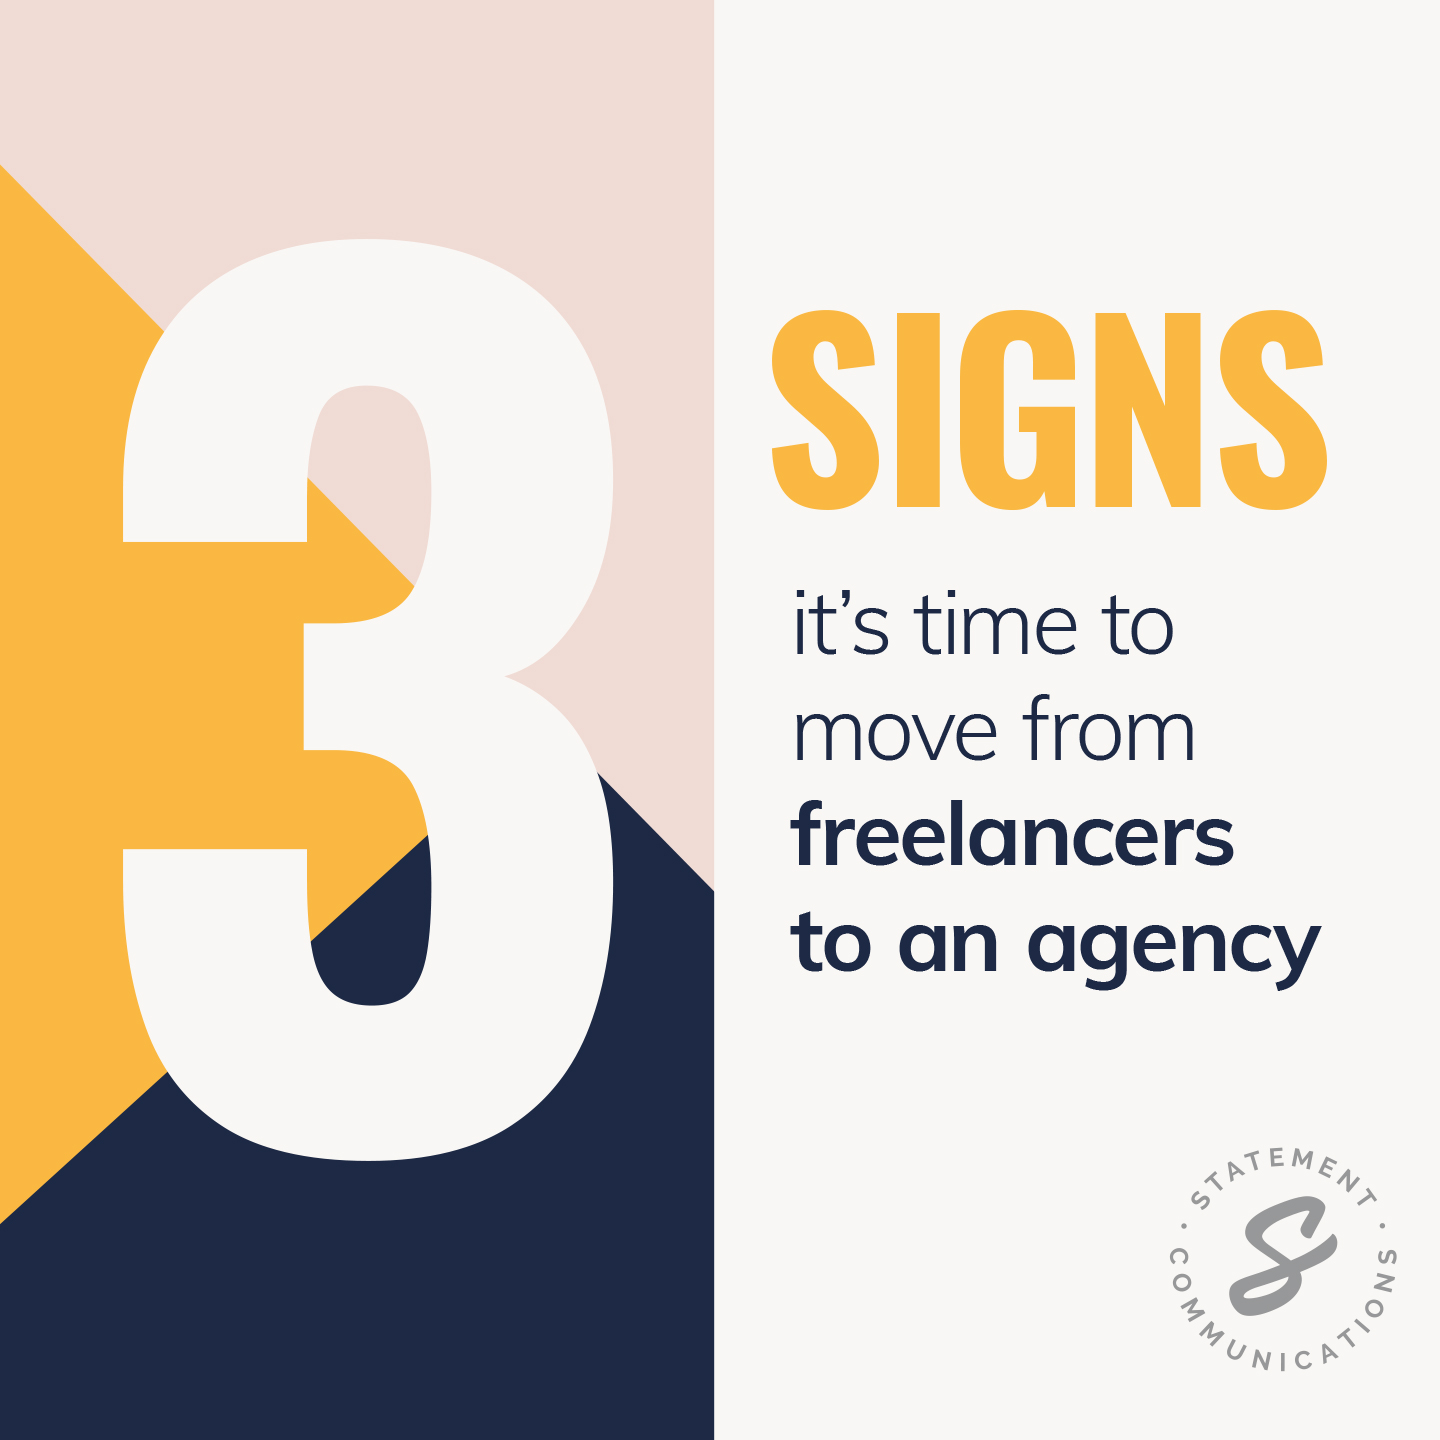 3 signs it's time to move from freelancers to an agency